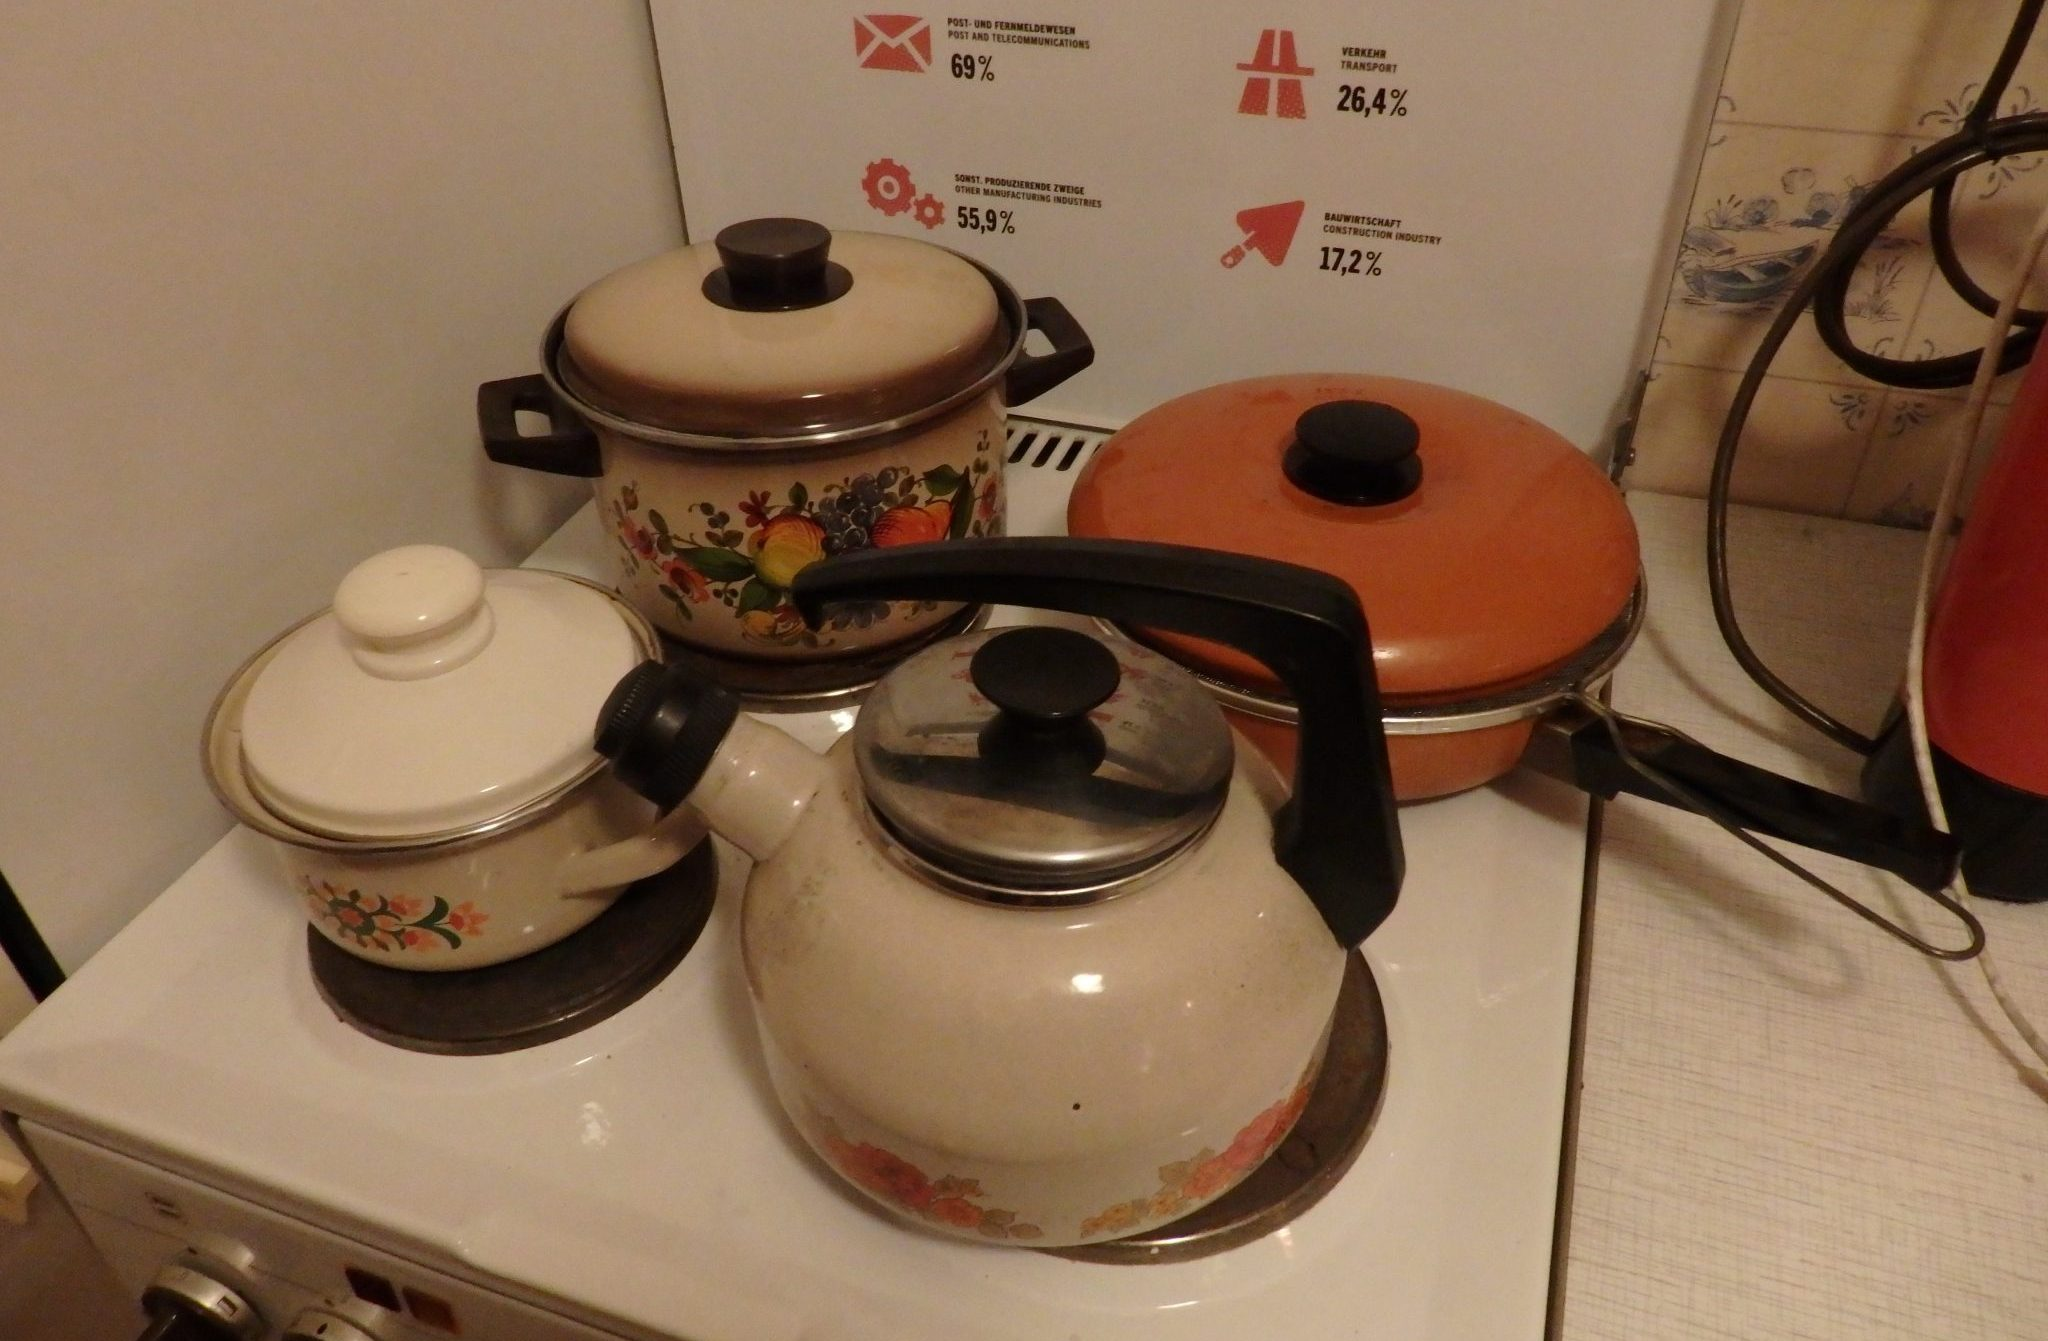 East German cooking utensils in an East German kitchen in the DDR Museum